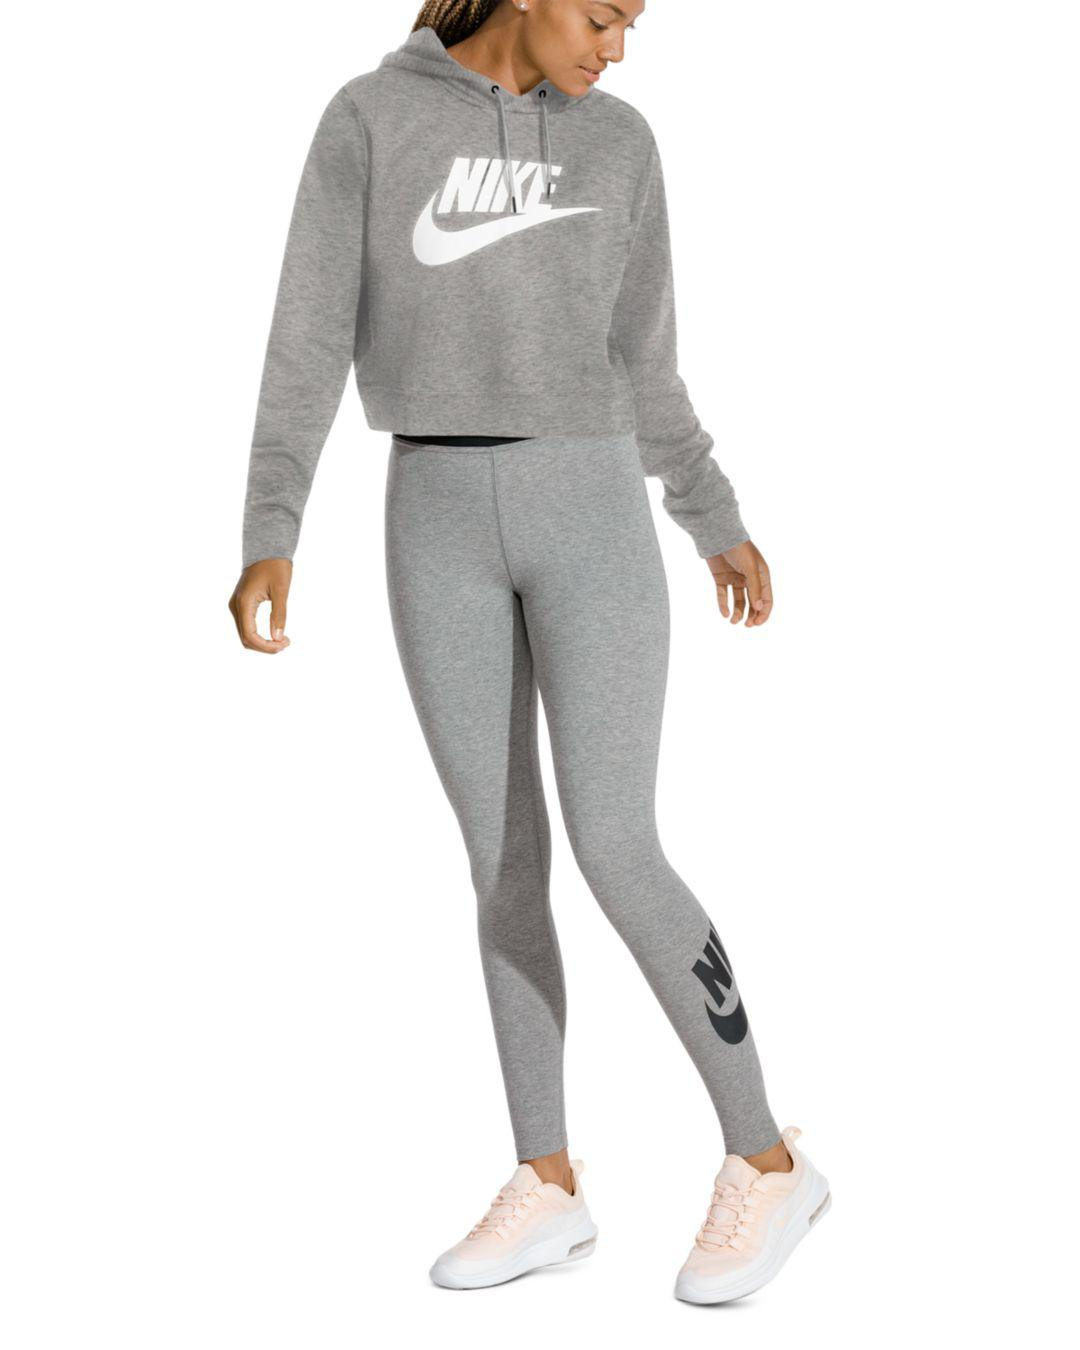 08b248c3c7a9 Lyst - Nike Rally Cropped Hooded Sweatshirt in Gray